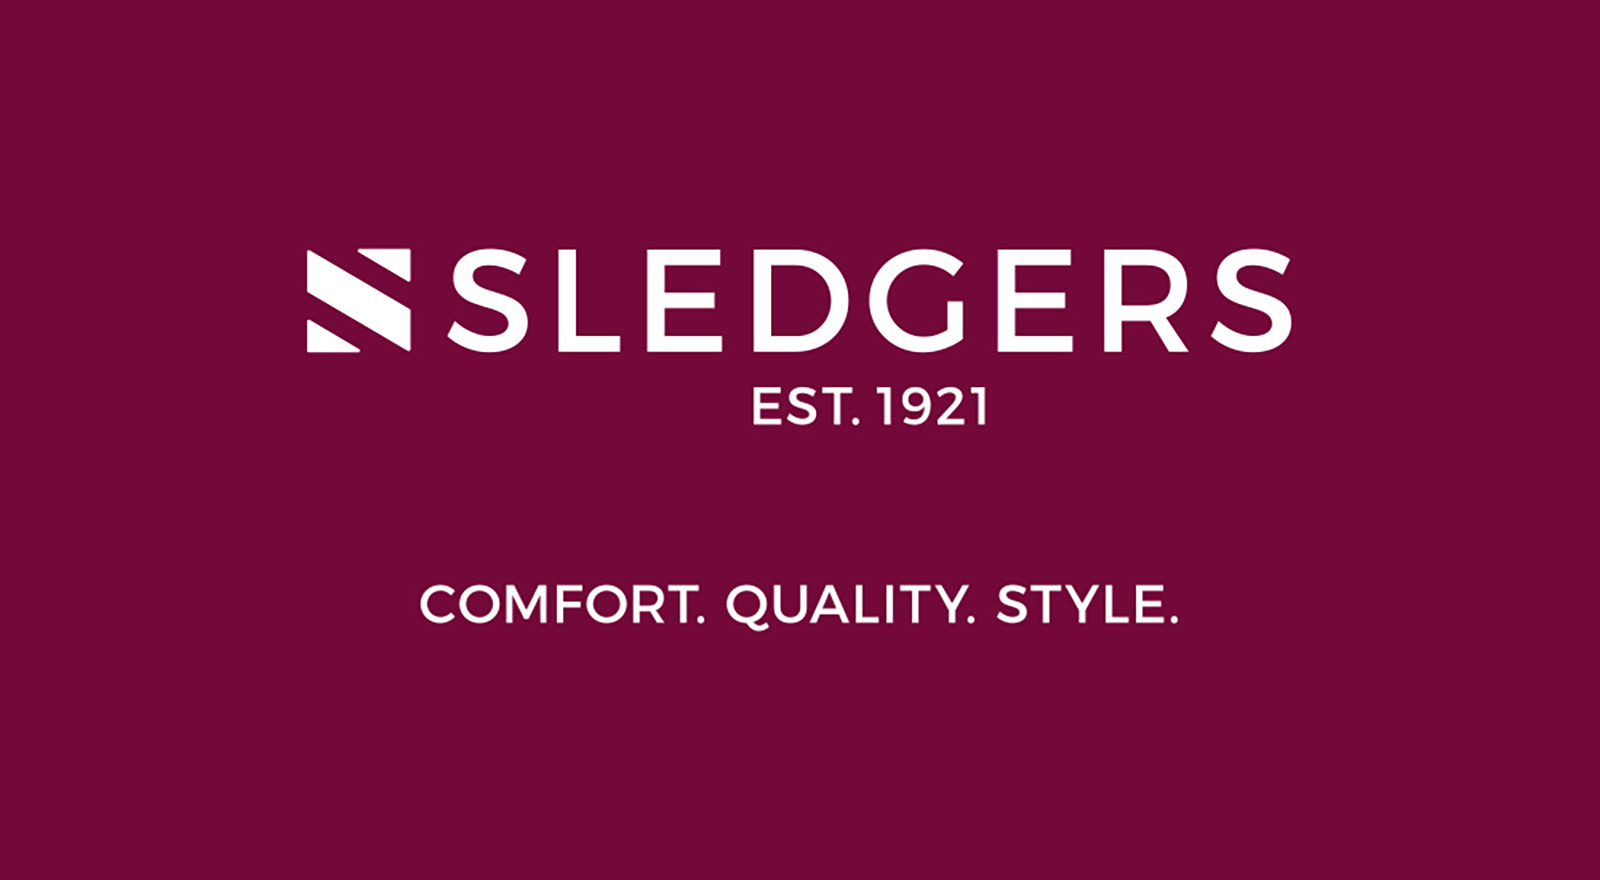 Sledgers Branding and Design